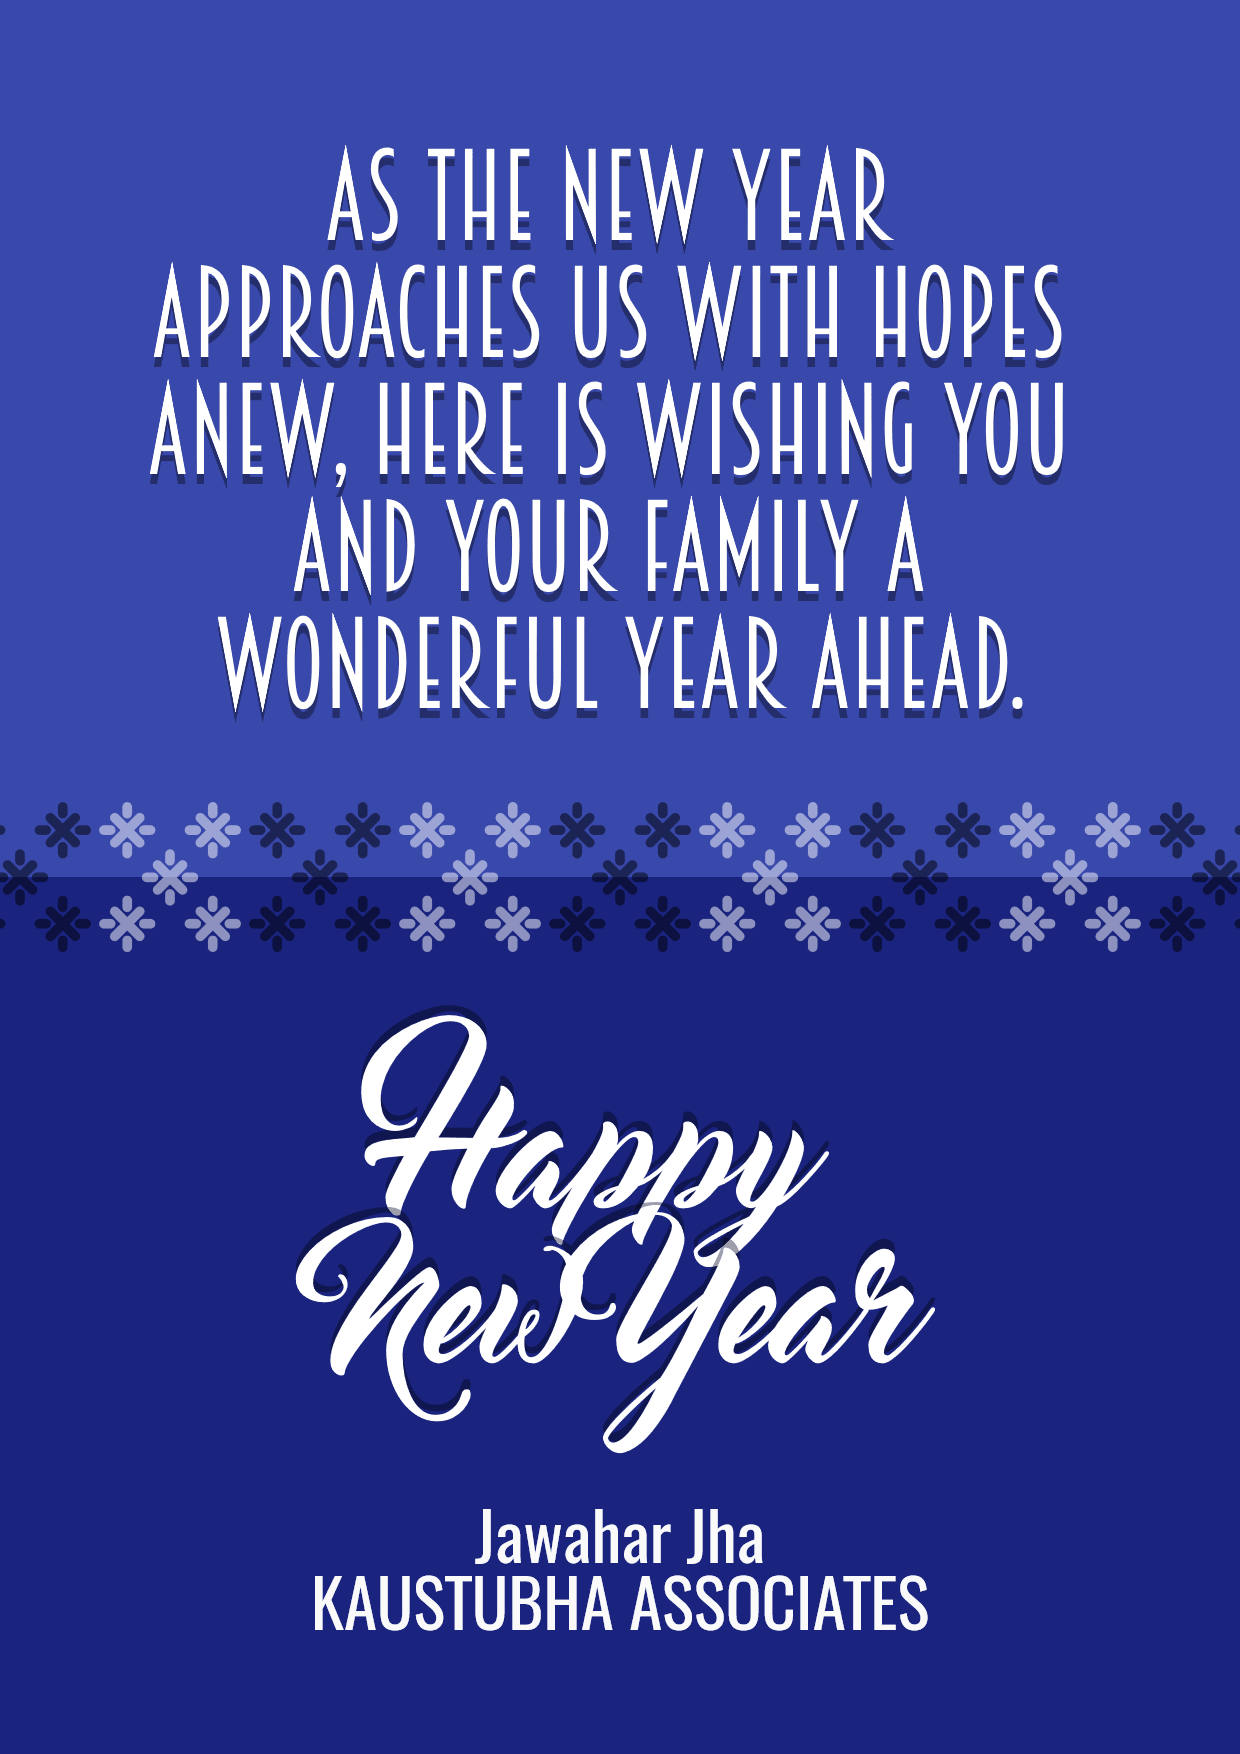 Blue,                Text,                Font,                Line,                Area,                Graphic,                Design,                Graphics,                Logo,                Brand,                Christmas,                Anniversary,                Happynewyear,                 Free Image